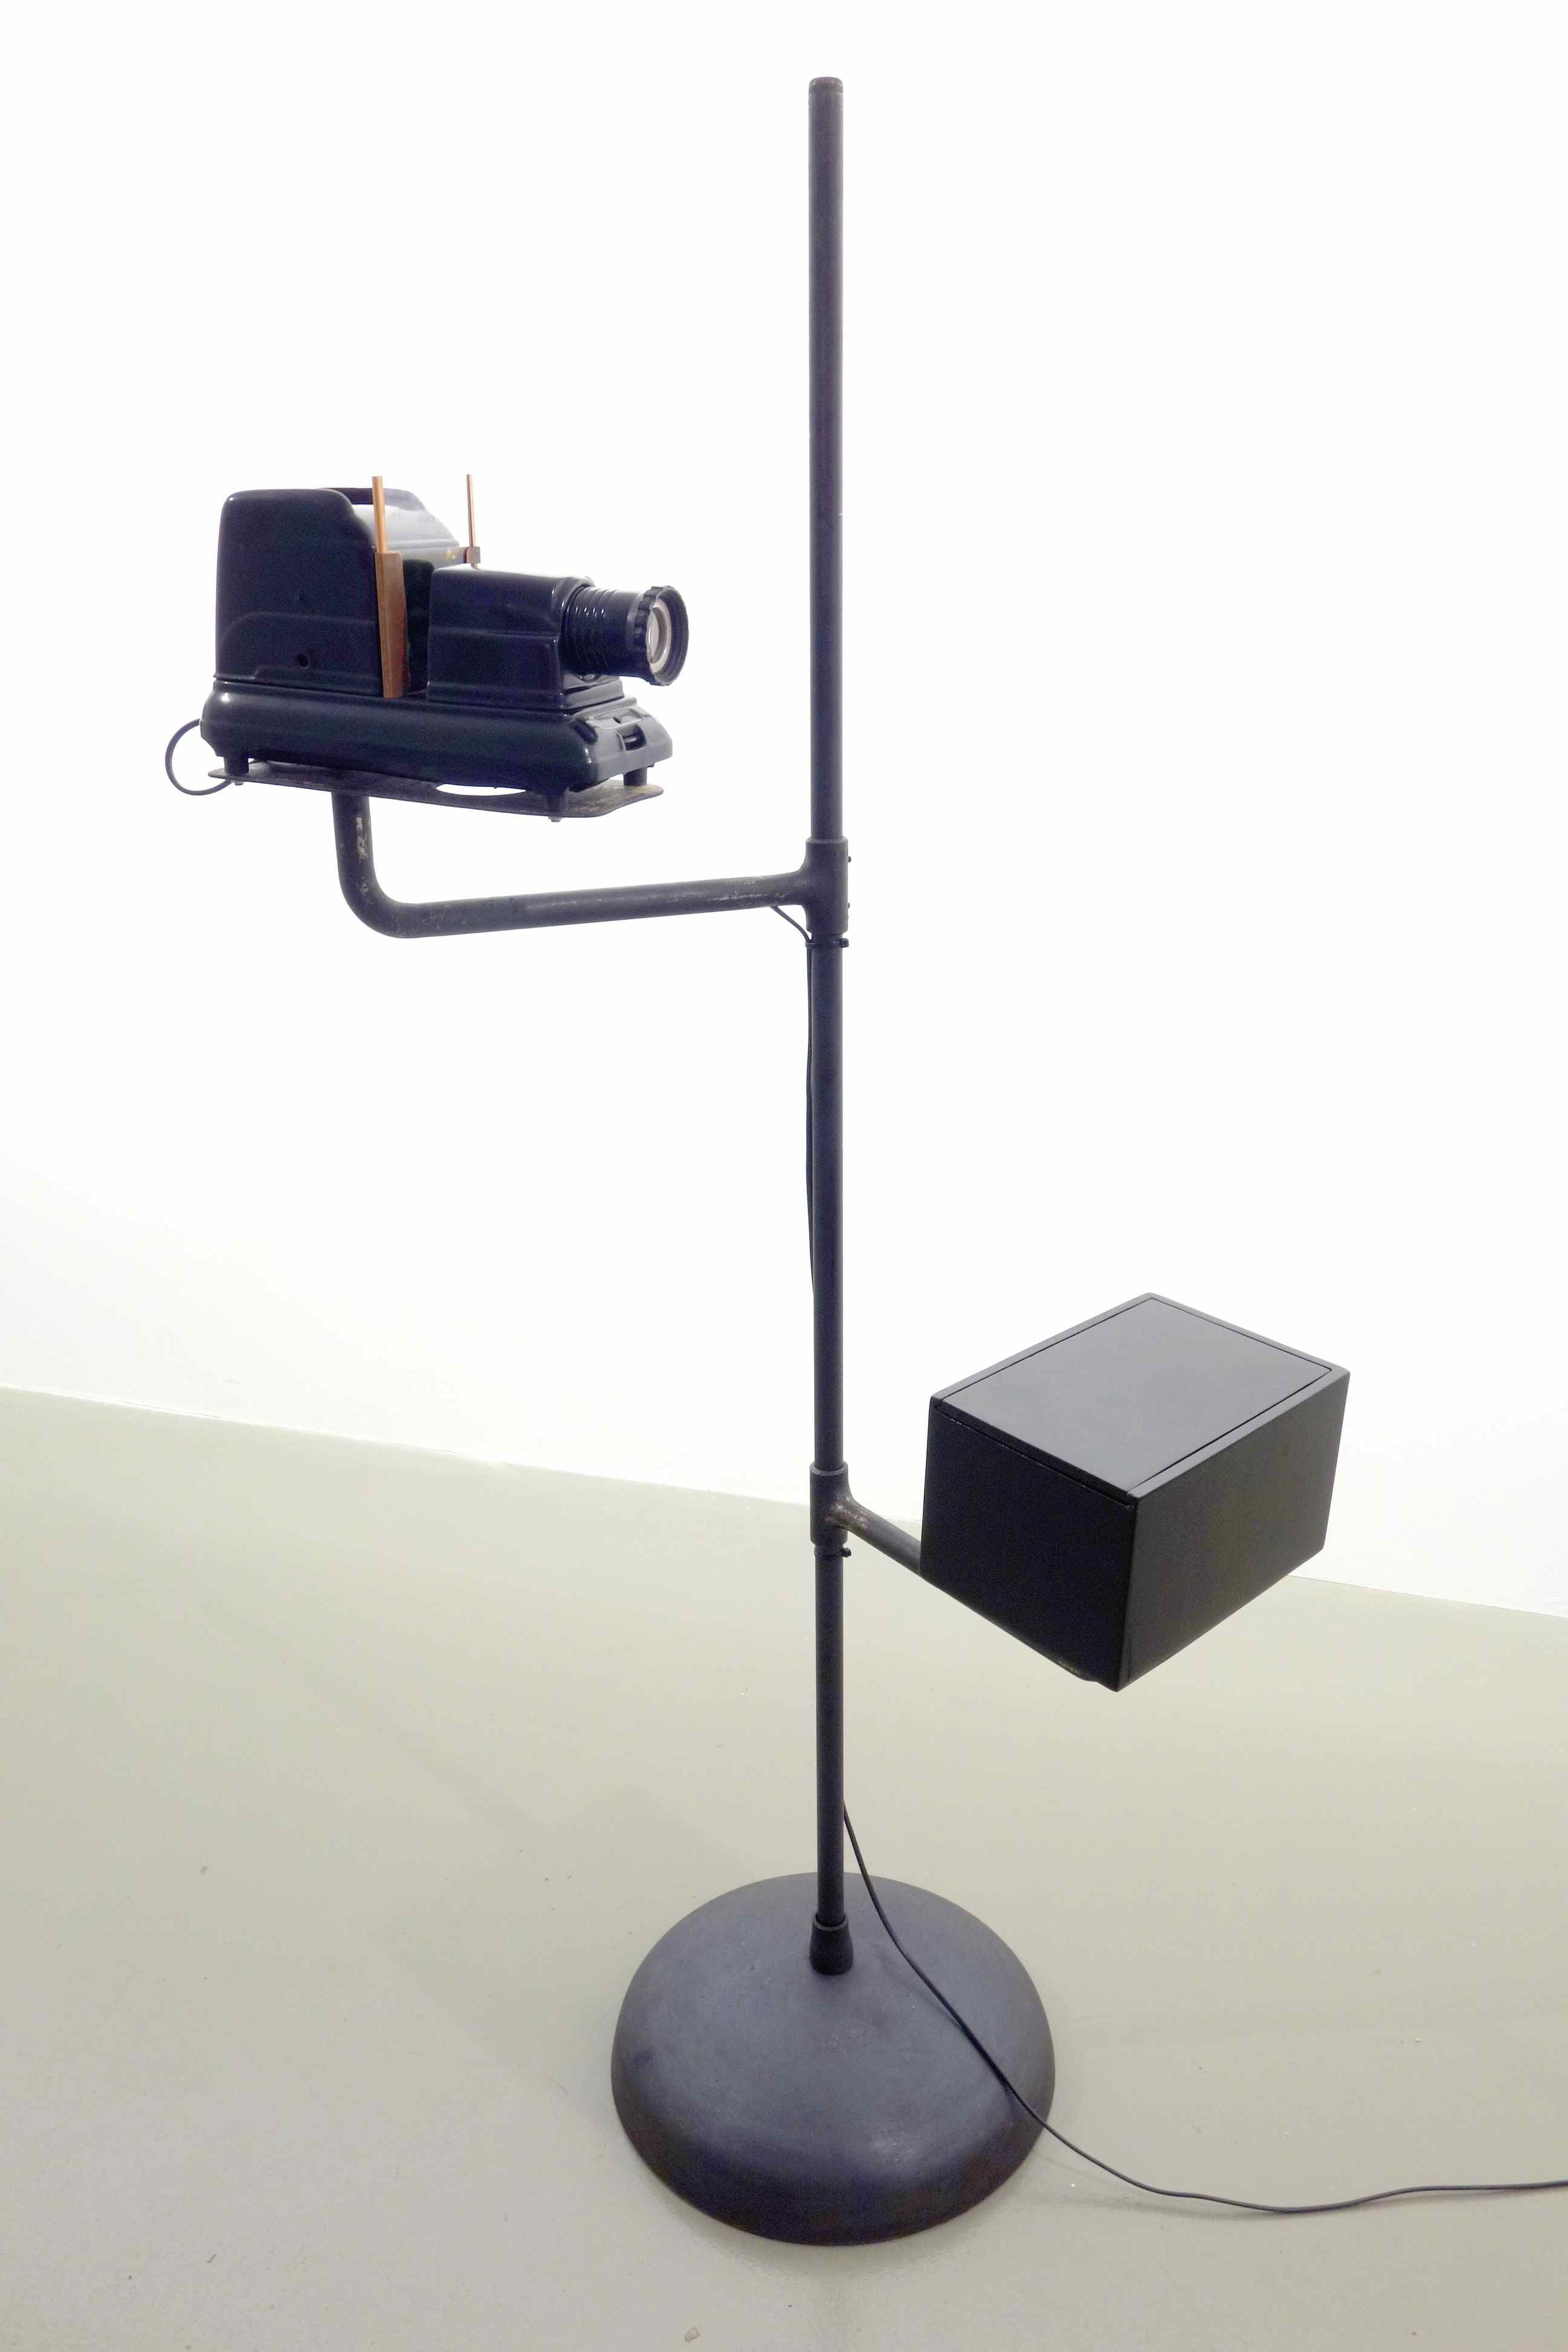 Lacquerscope #7  2014 Son Ta lacquered medium format (50mm) projector. Iron stand, base and swivel arms 174.5 x 121 cm